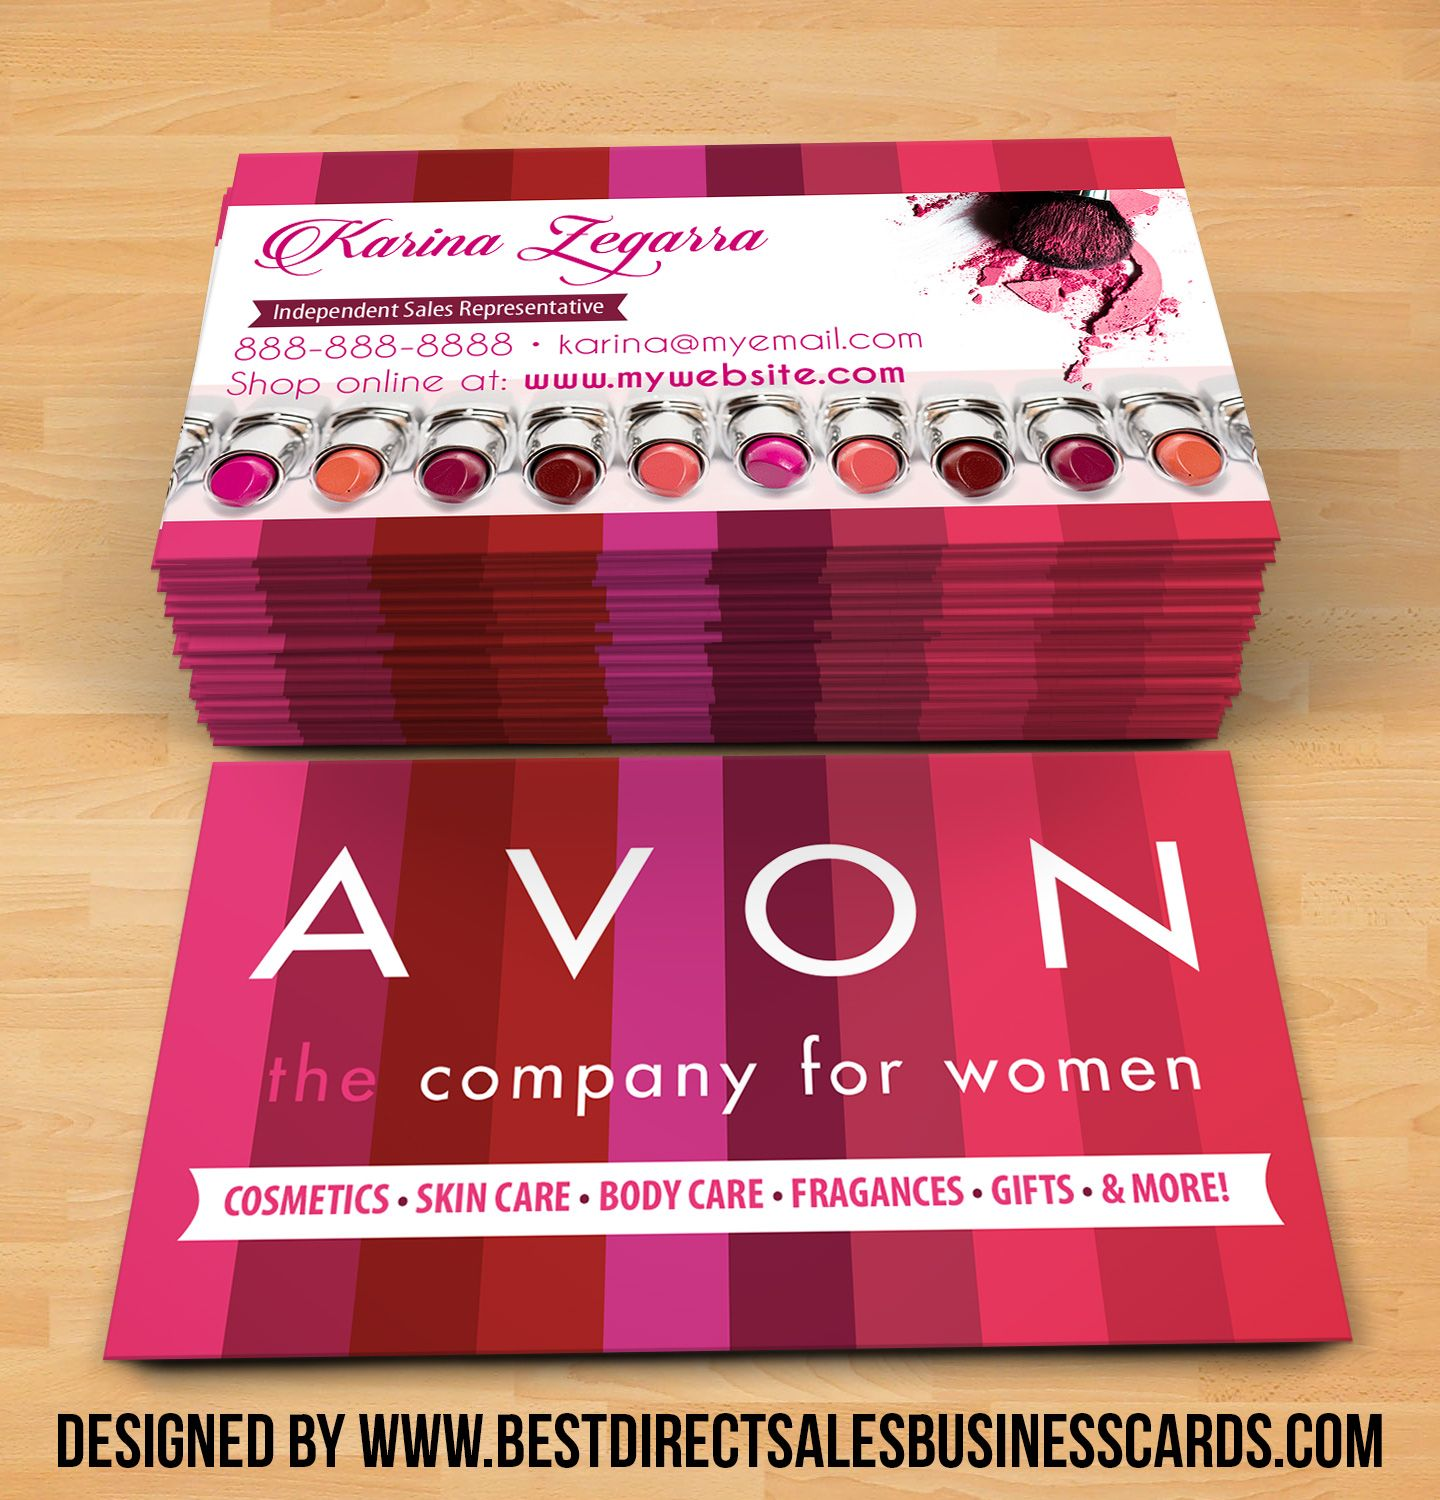 Avon Business Cards Style Avon Business Cards Ideas - Avon business card template